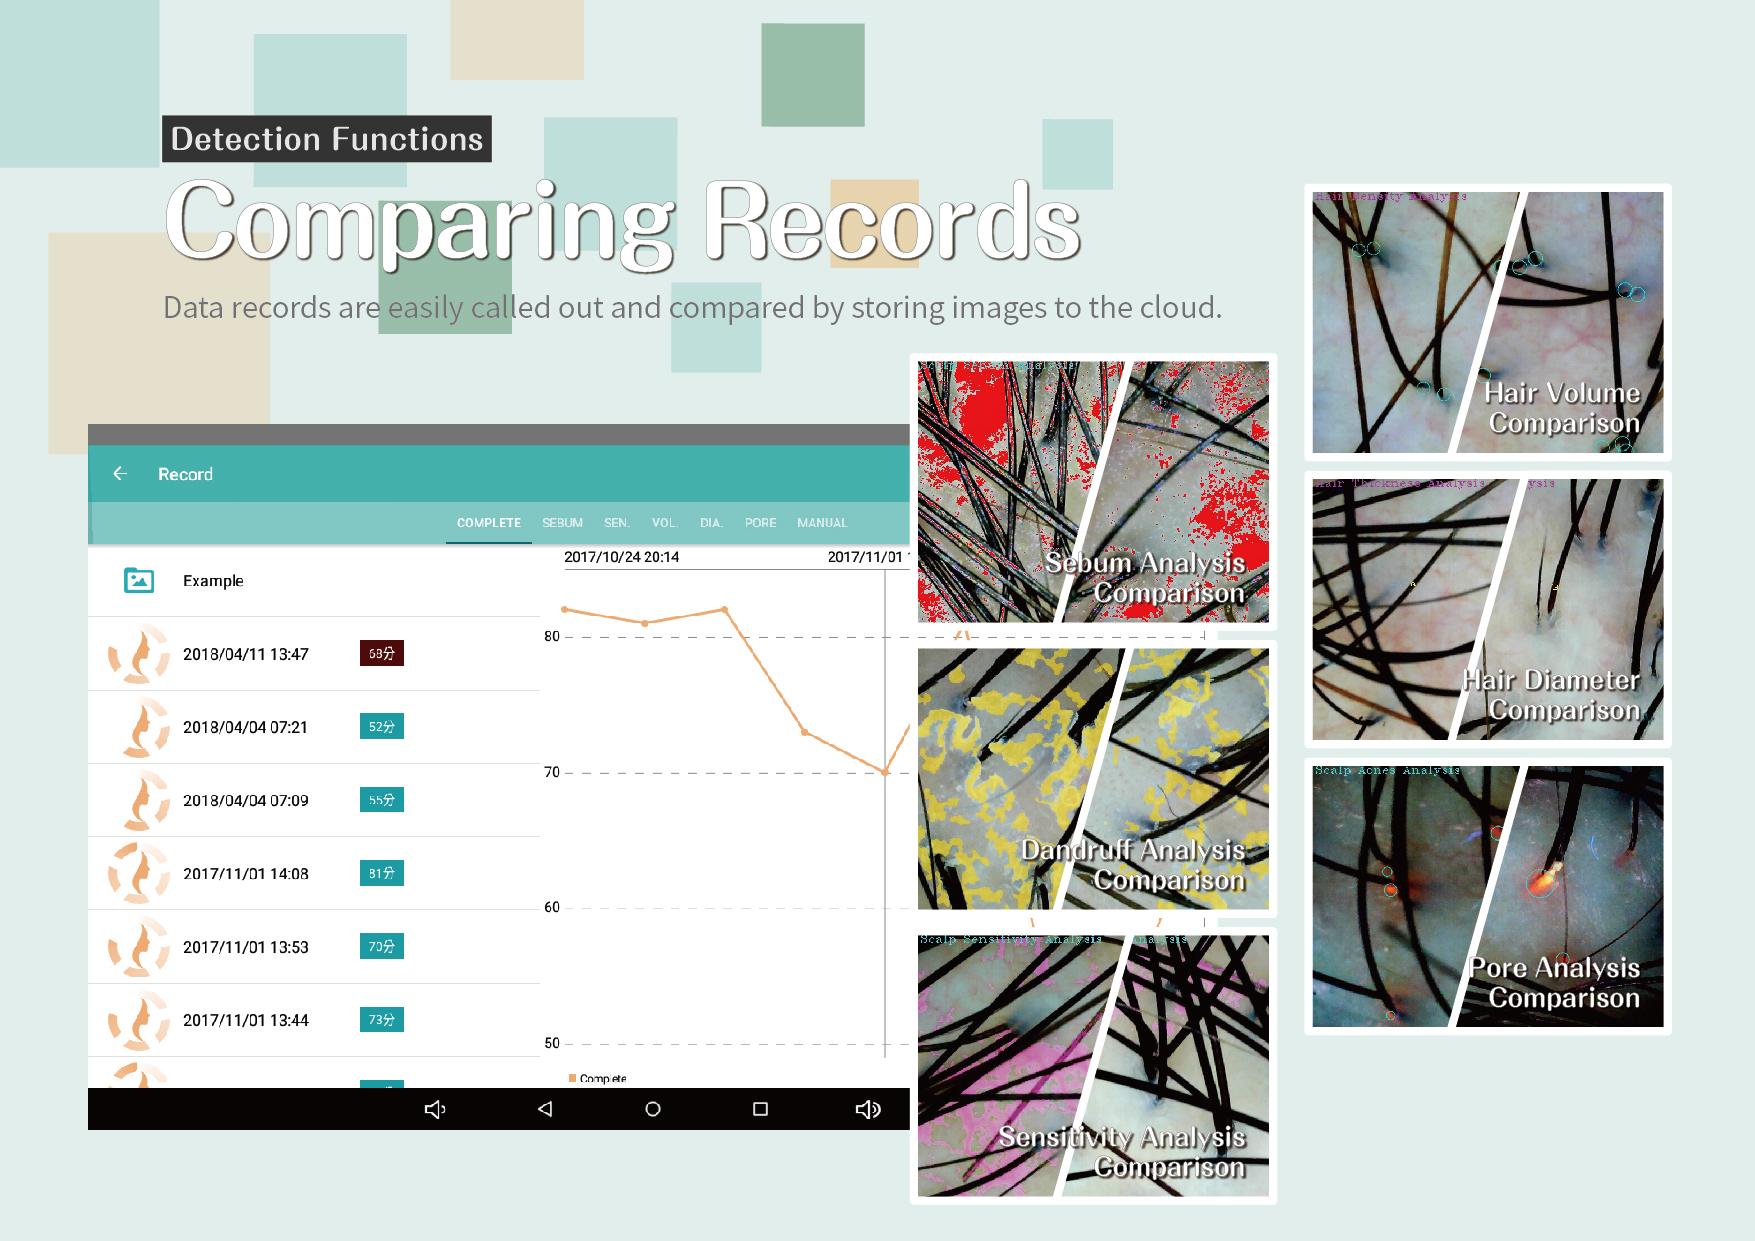 Comparing Records: Data records are easily called out and compared by storing images to the cloud.